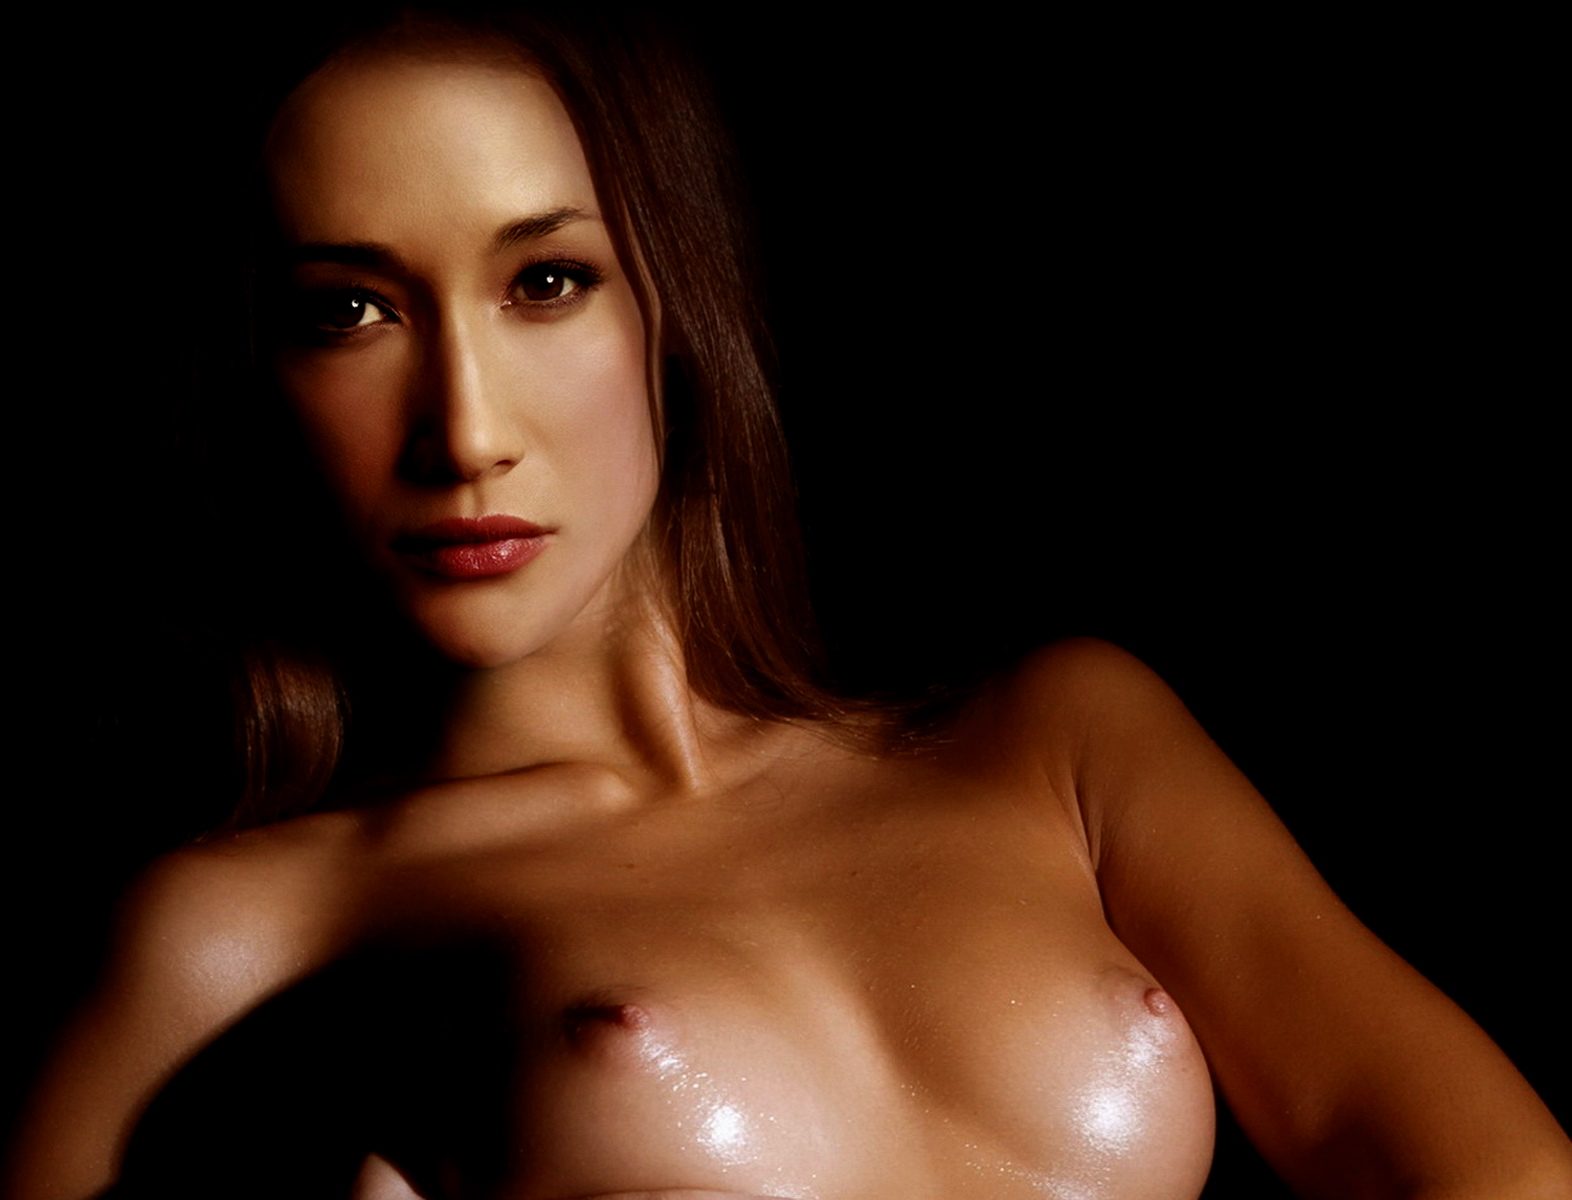 Naked Pictures Of Maggie Q